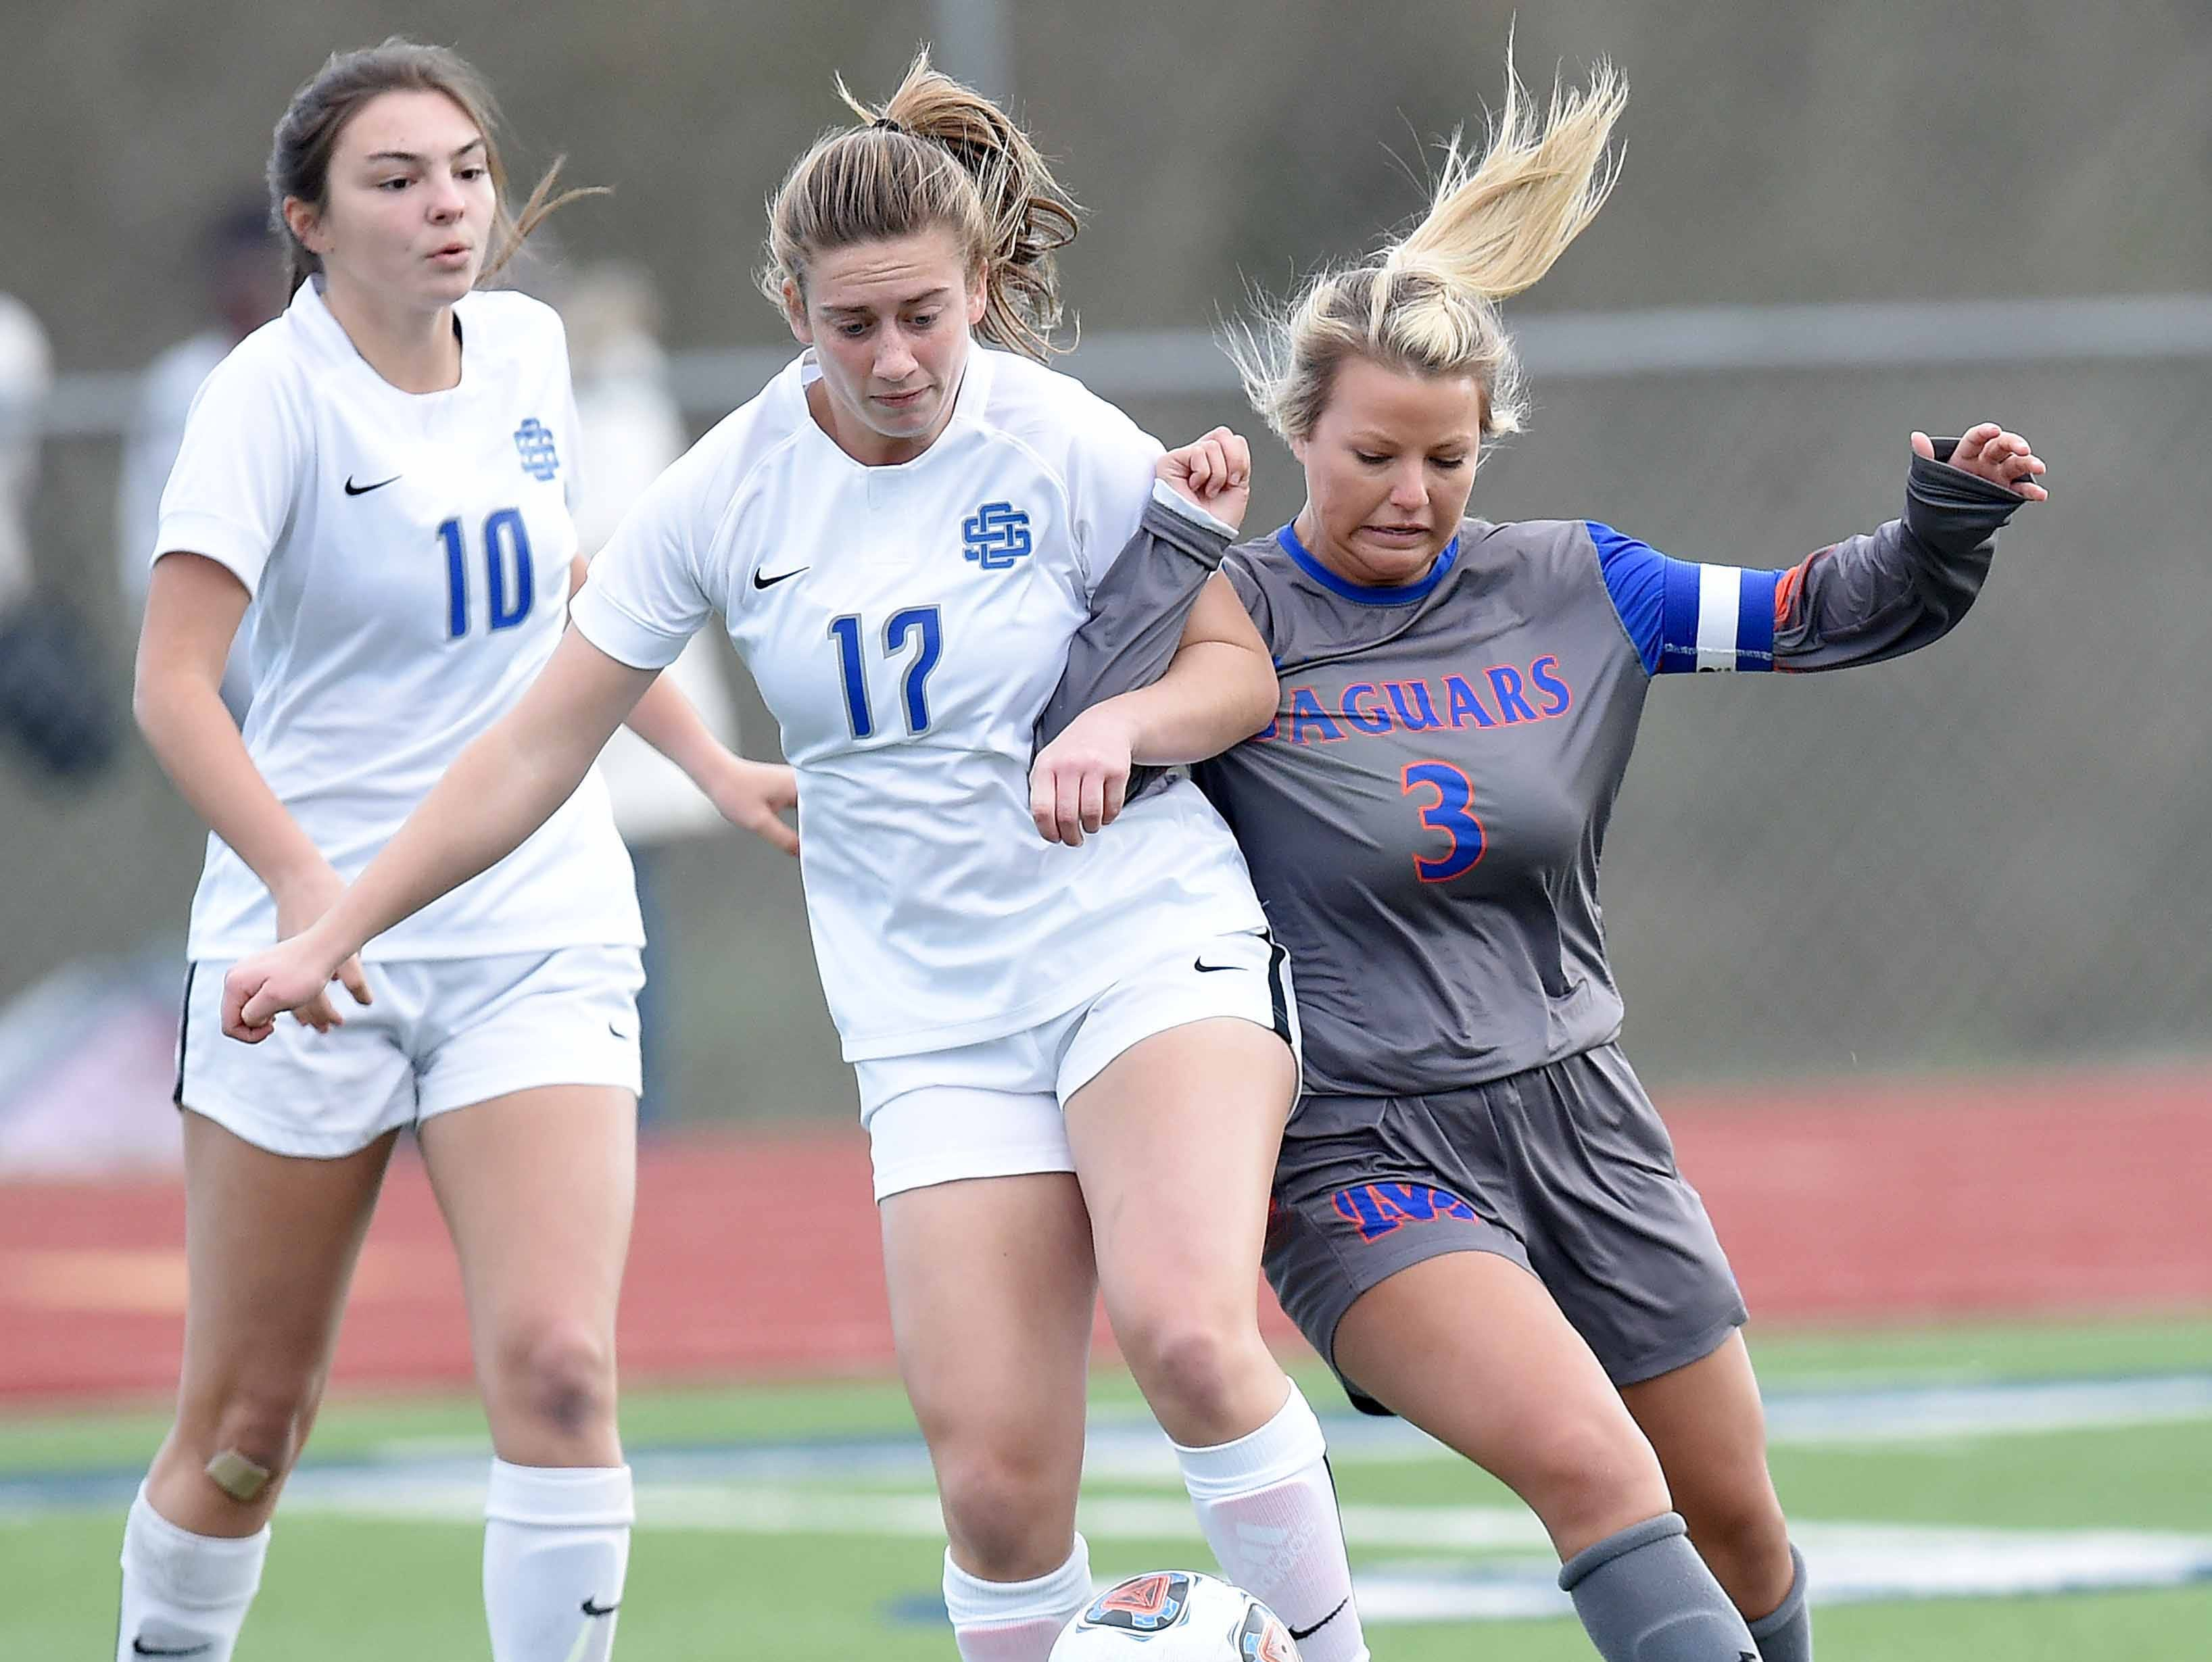 Ocean Springs' Mallory Bellon (17) and Madison Central's Cady Lloyd (3) compete for a loose ball in the Class 6A state championship in the MHSAA BlueCross Blue Shield of Mississippi Soccer Classic on Saturday, February 9, 2019, at Ridgeland High School in Ridgeland, Miss.